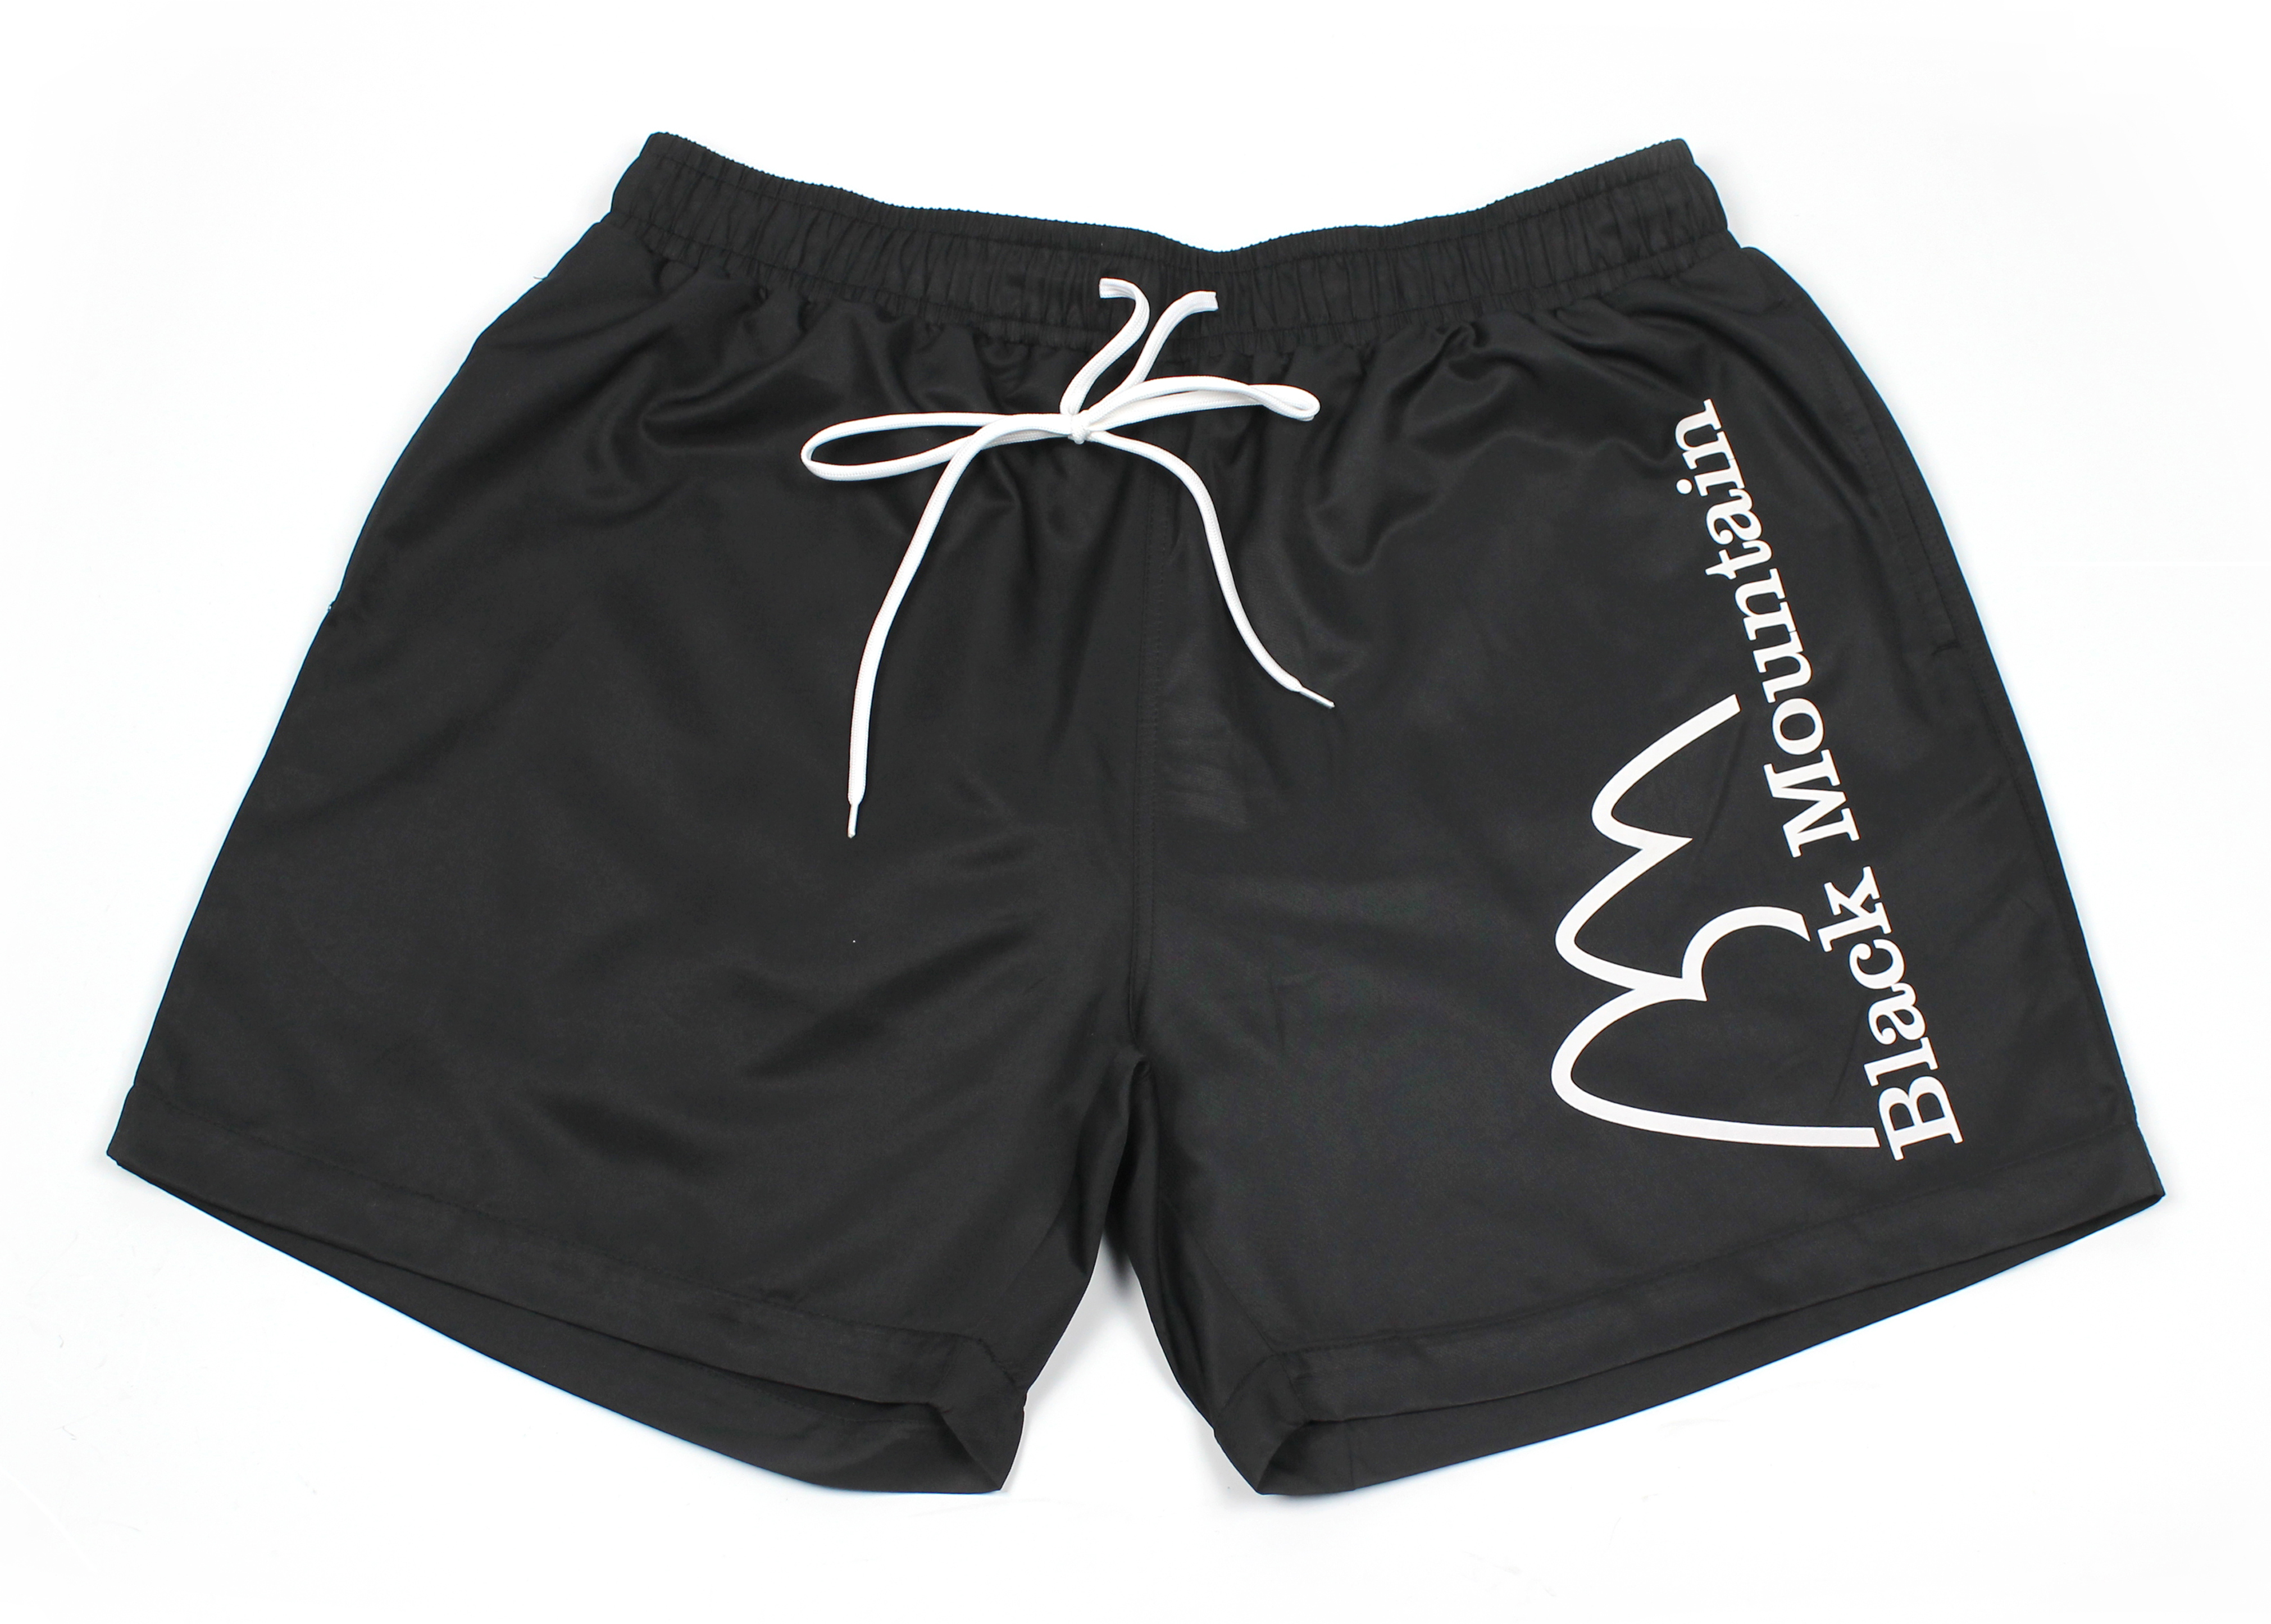 As you can see, here is the black mountain short we designed completely for them